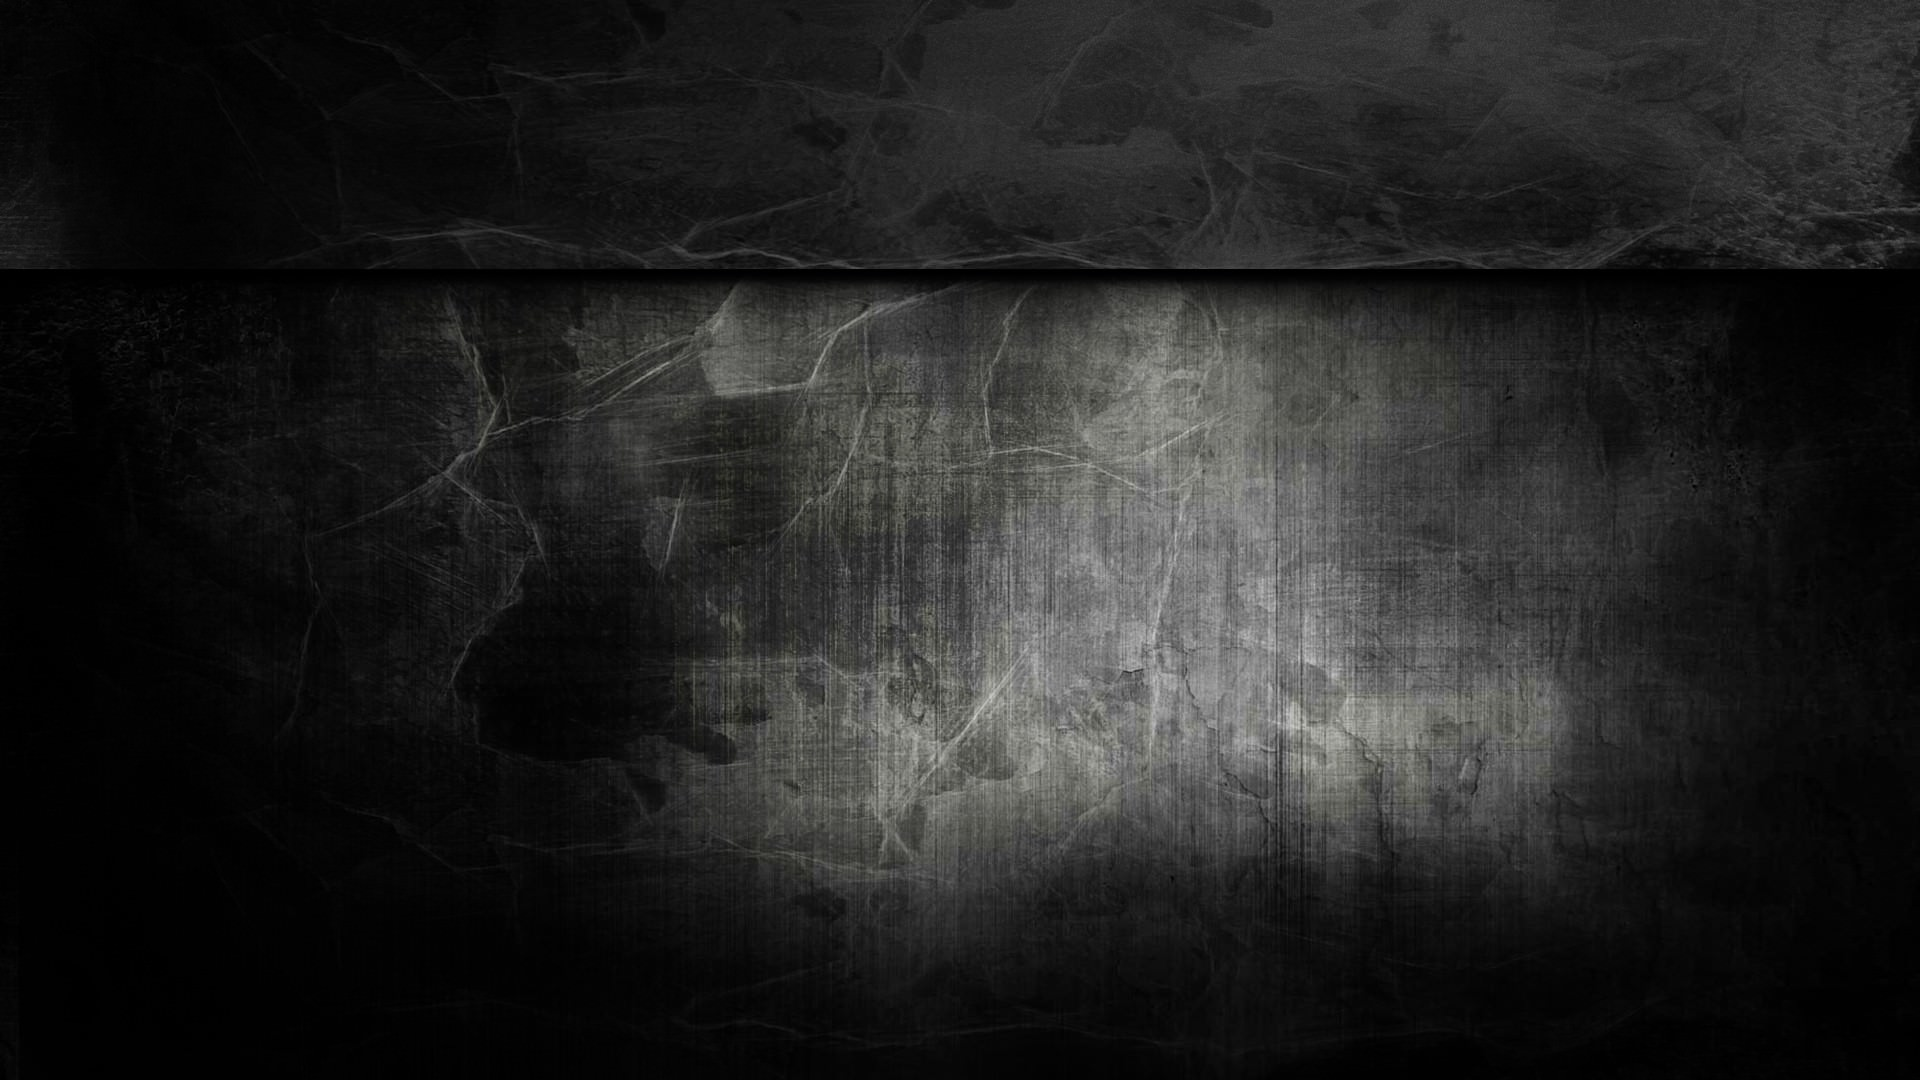 Abstract Dark Grunge Background